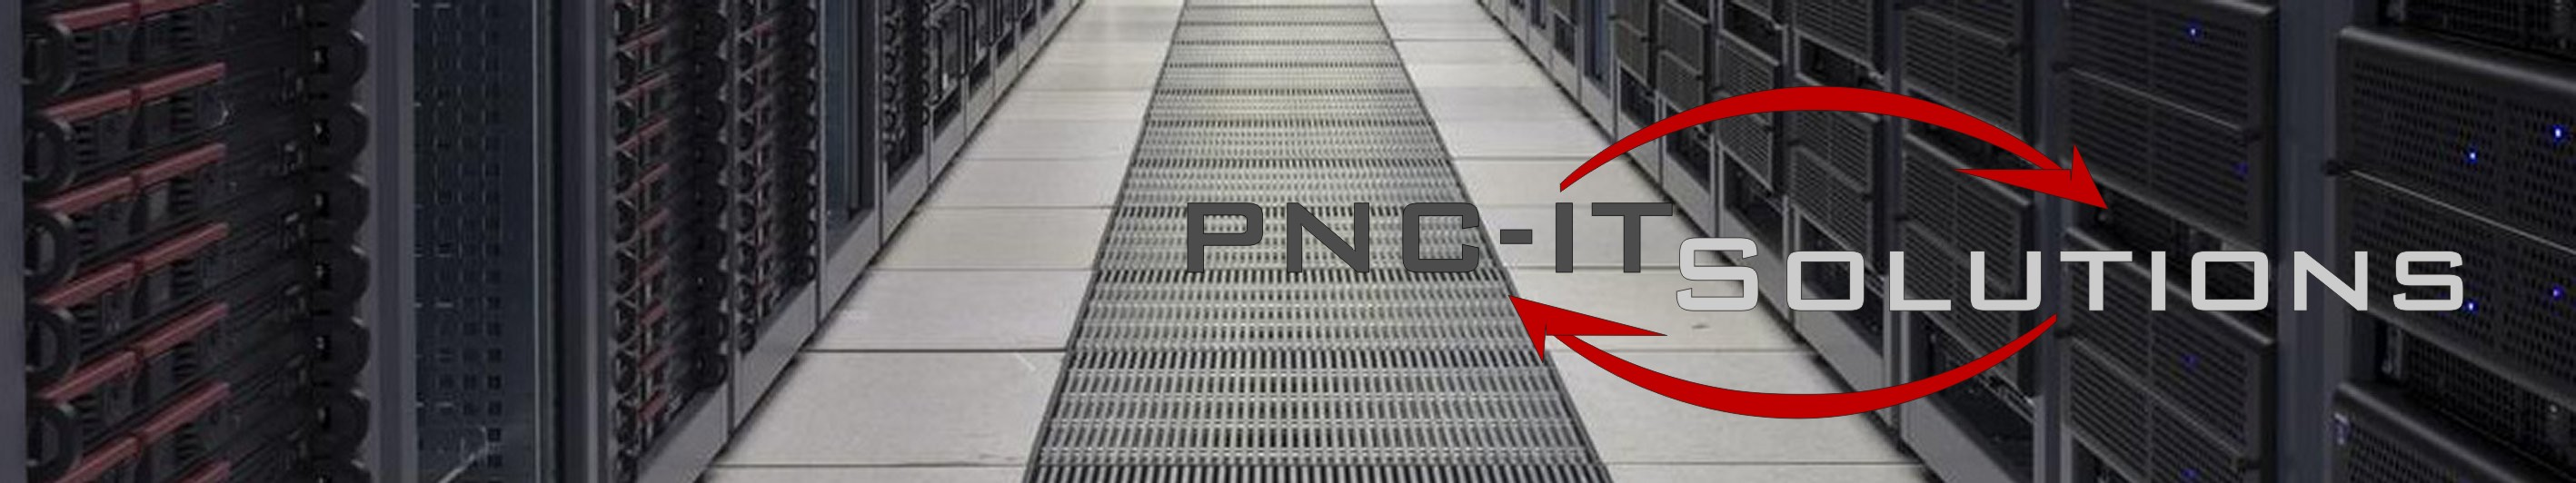 http://www.pnc-itsolutions.de